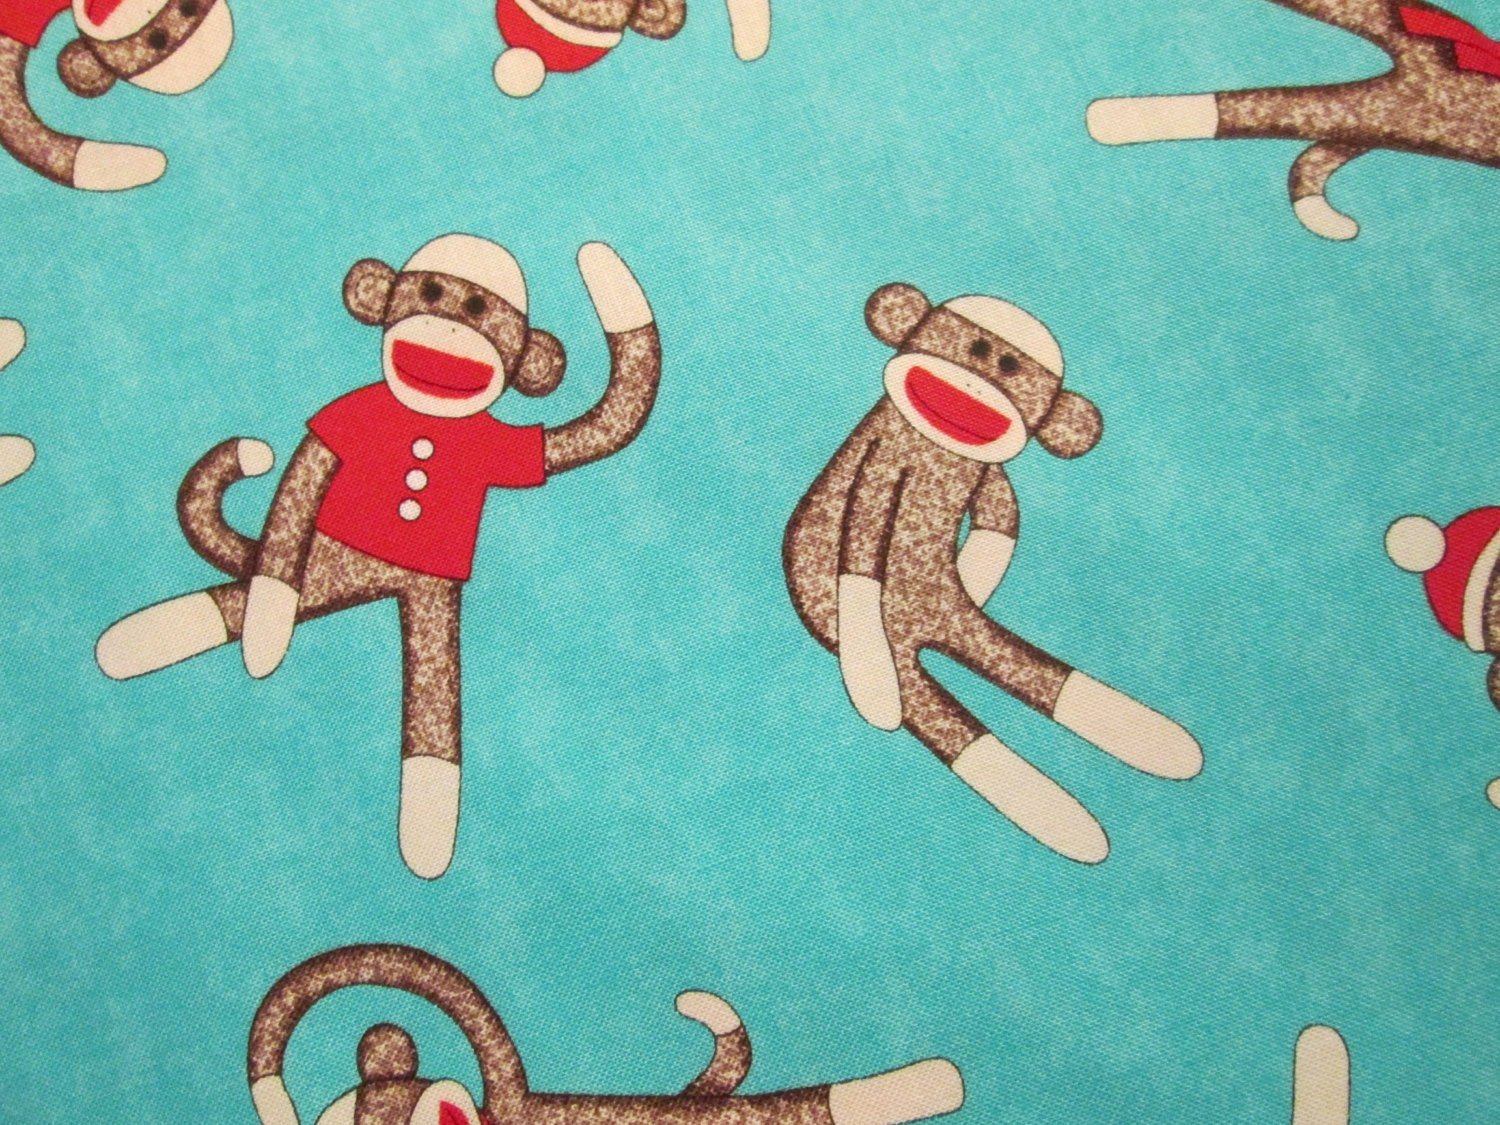 Chandeliers pendant lights for Baby monkey fabric prints